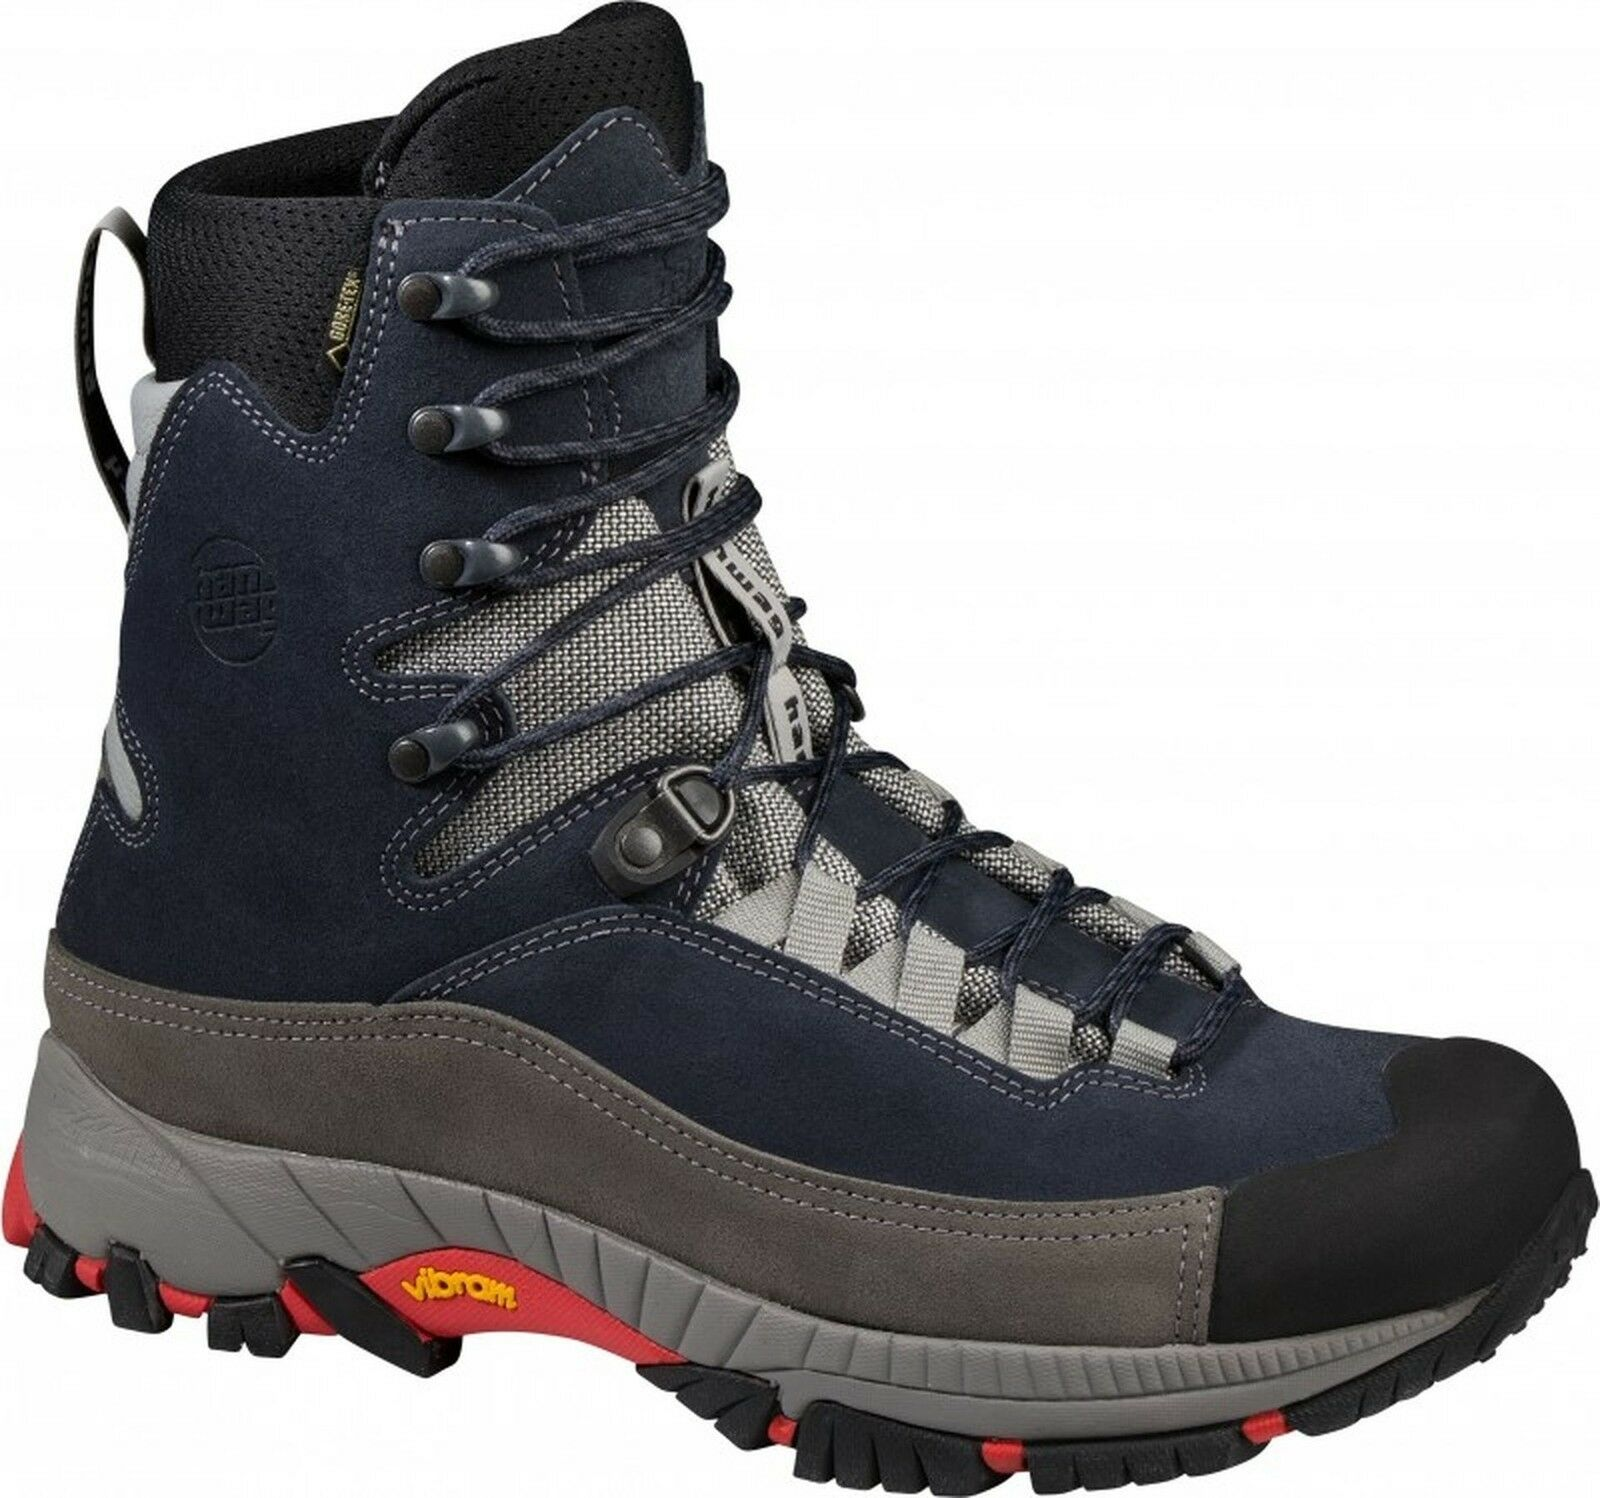 Hanwag Boots Paraglider Sky GTX Size 5,5  - 39 Navy bluee  welcome to choose